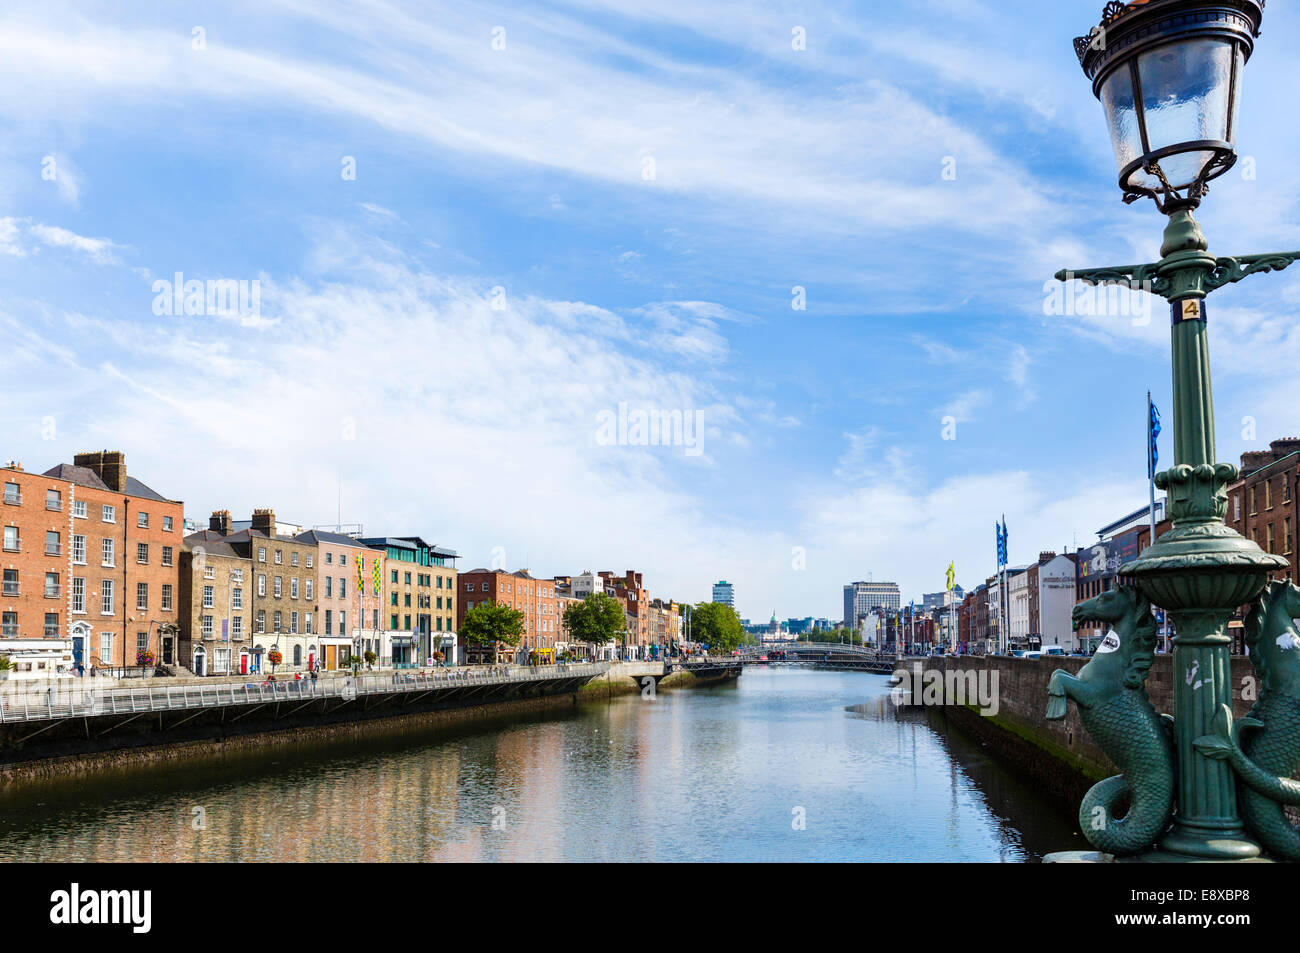 River Liffey from Grattan Bridge, Dublin City, Republic of Ireland Stock Photo